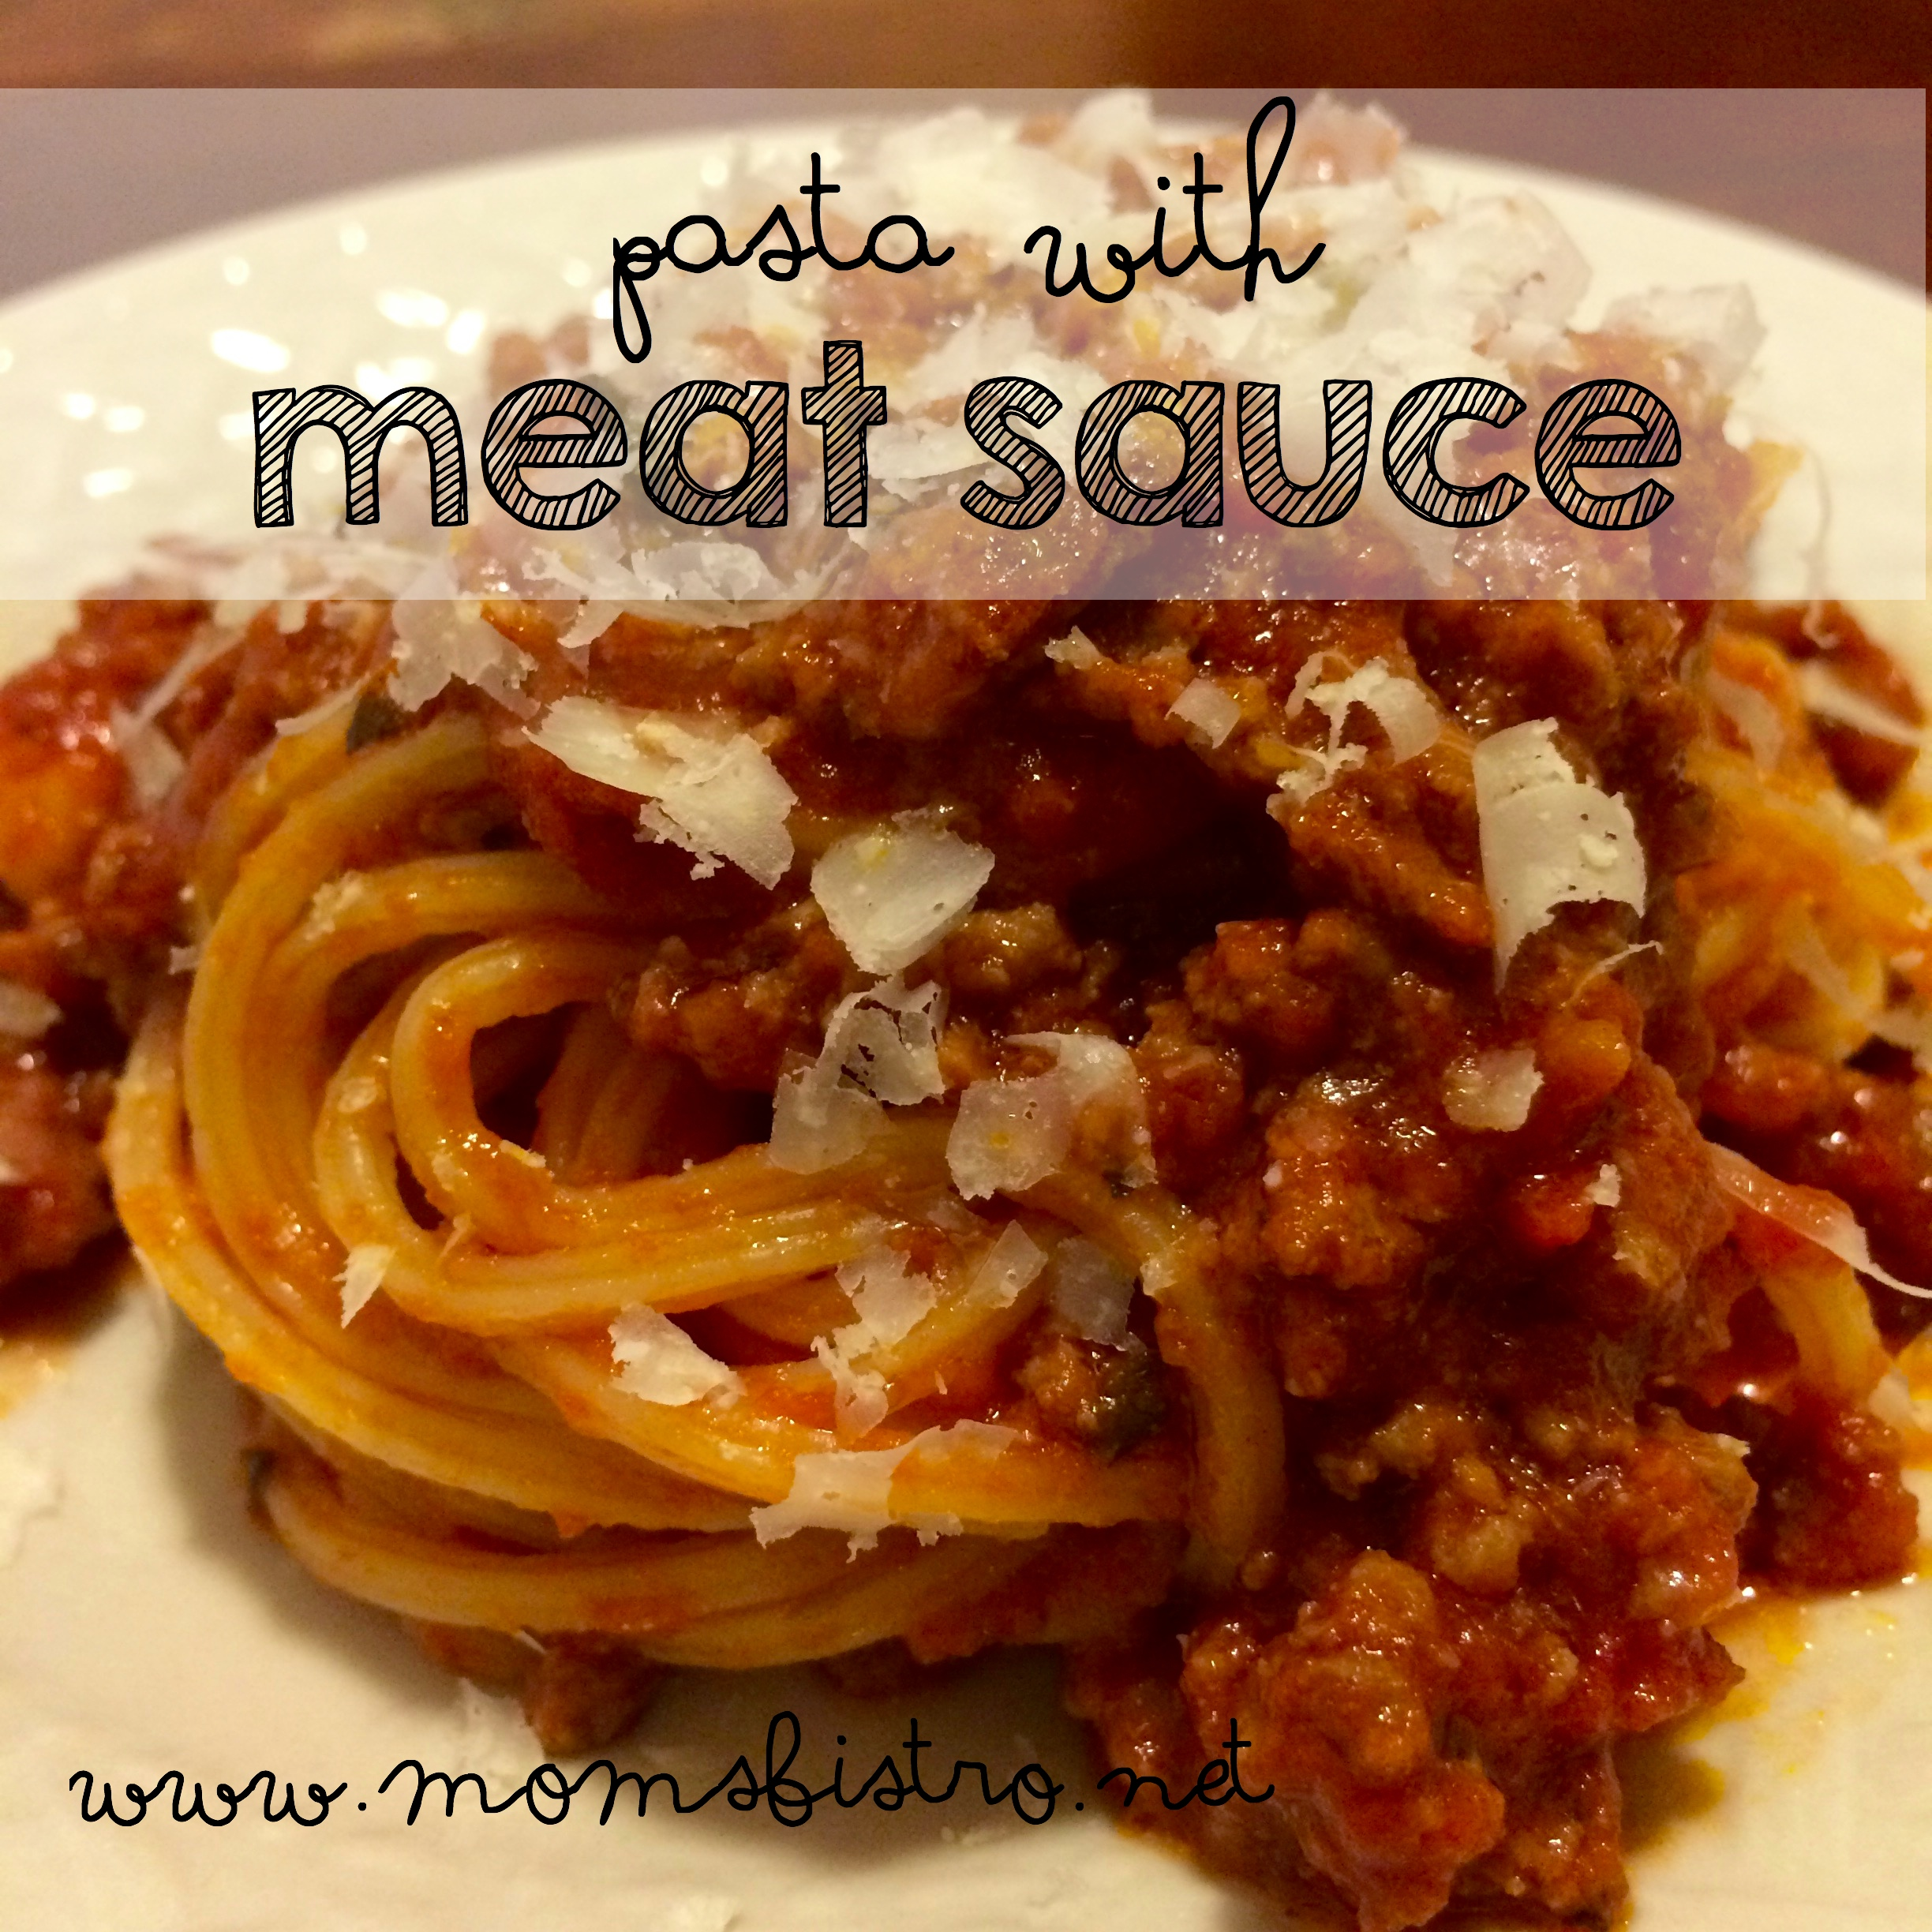 week night meal solution 30 minute pasta with meat sauce spaghetti and meat sauce recipe moms bistro